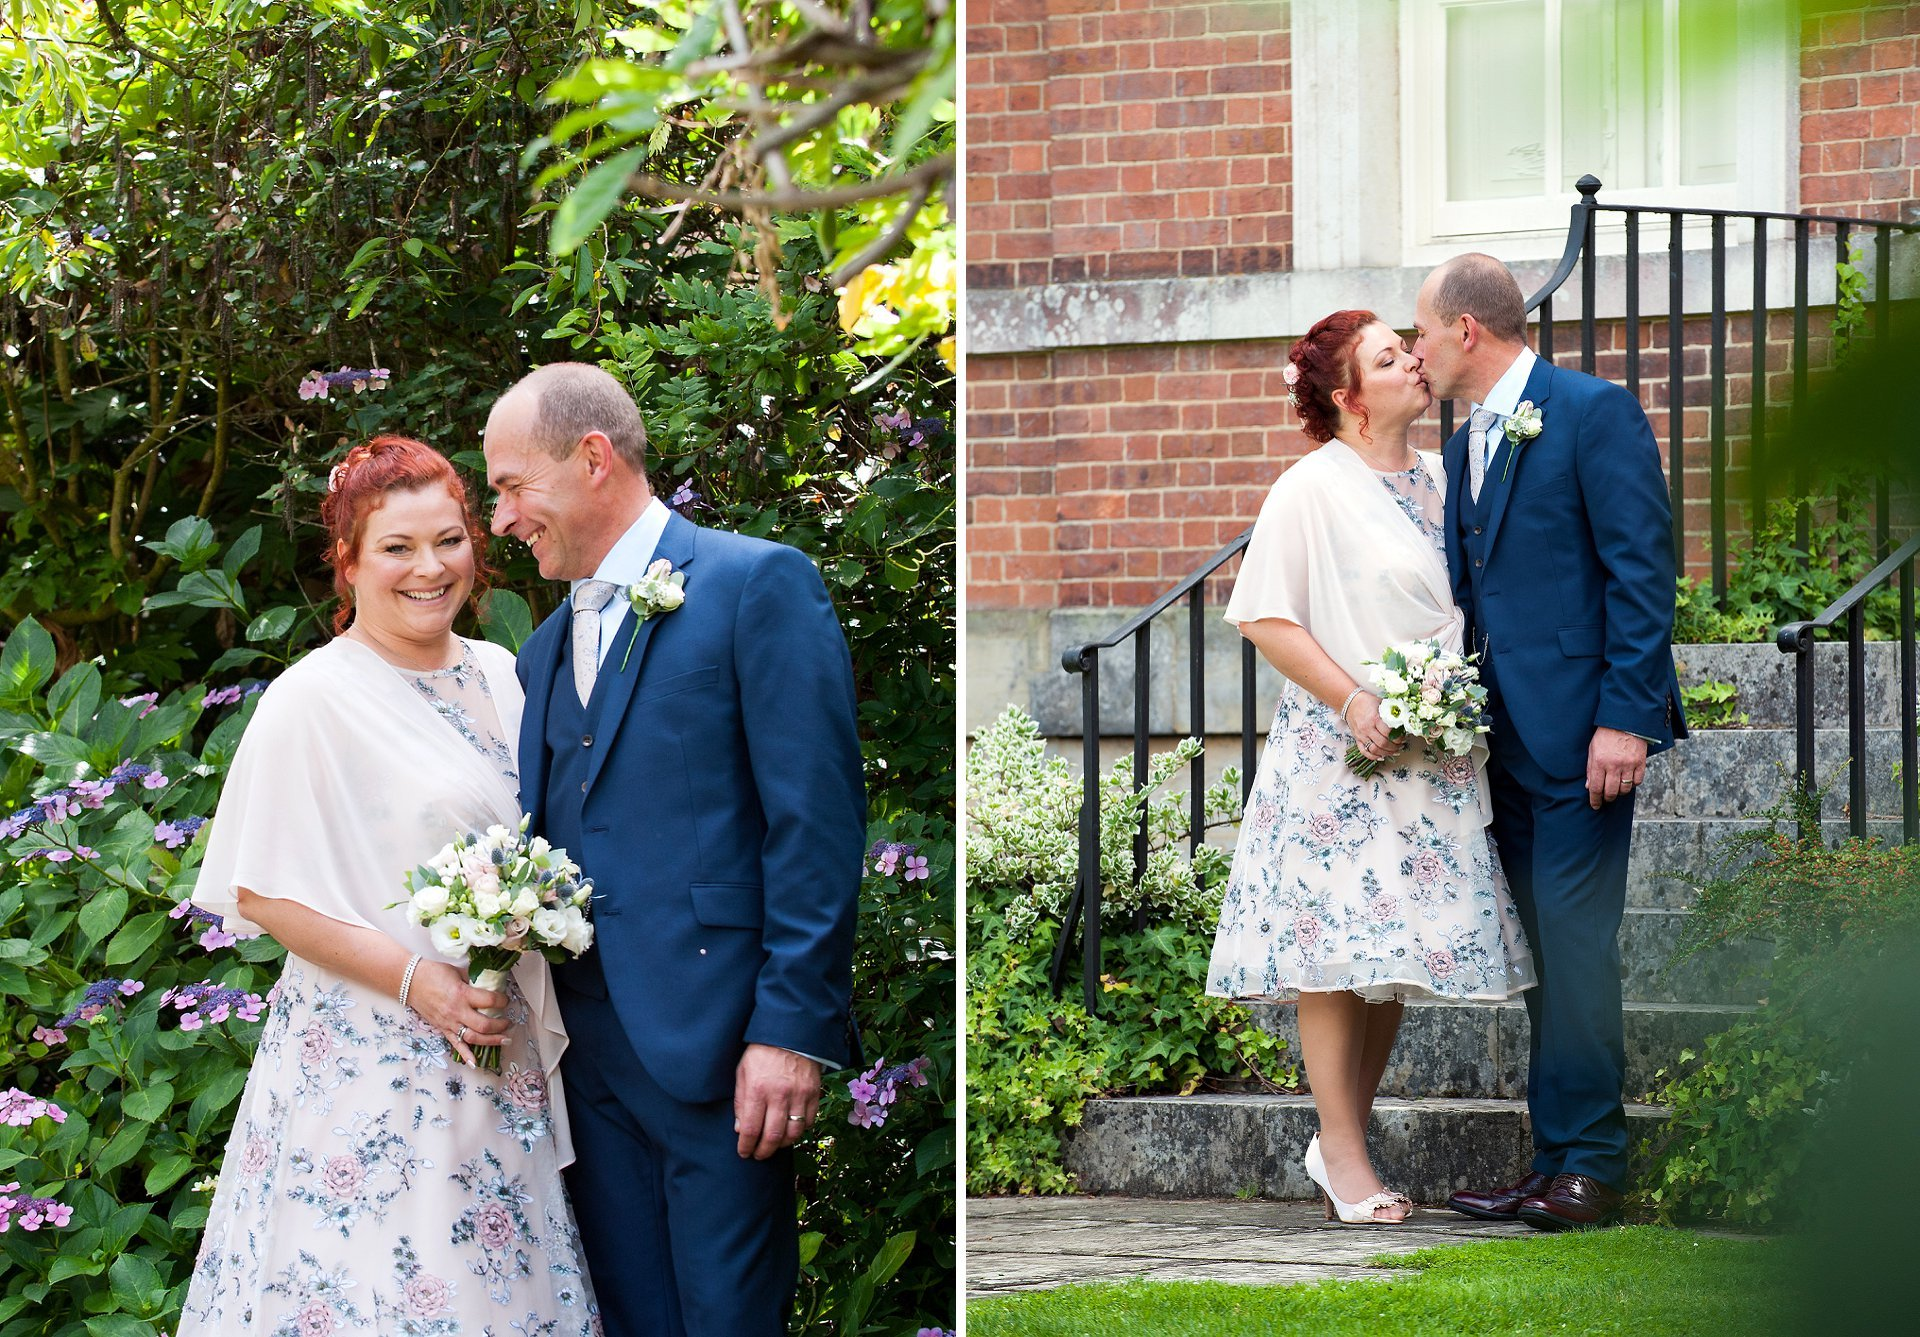 Park House Horsham wedding photographer Emma Duggan specialises in registry office weddings in West Sussex - the bride and groom pose for photos in the garden which backs onto Park House in Horsham and leads to Horsham Park and the Conservatory Cafe